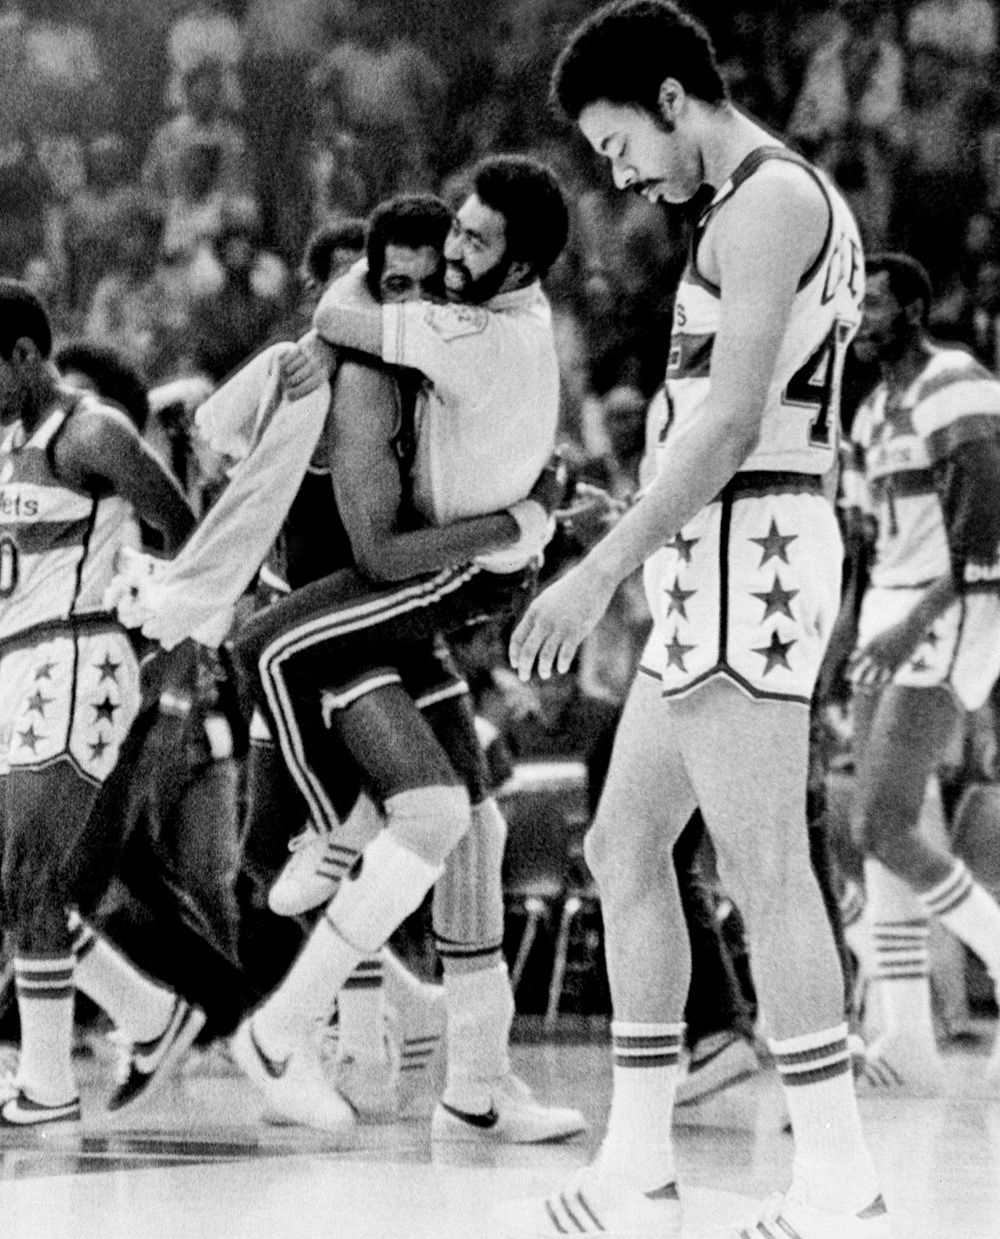 Steve Bracey and Clifford Ray 75 great photos from the NBA